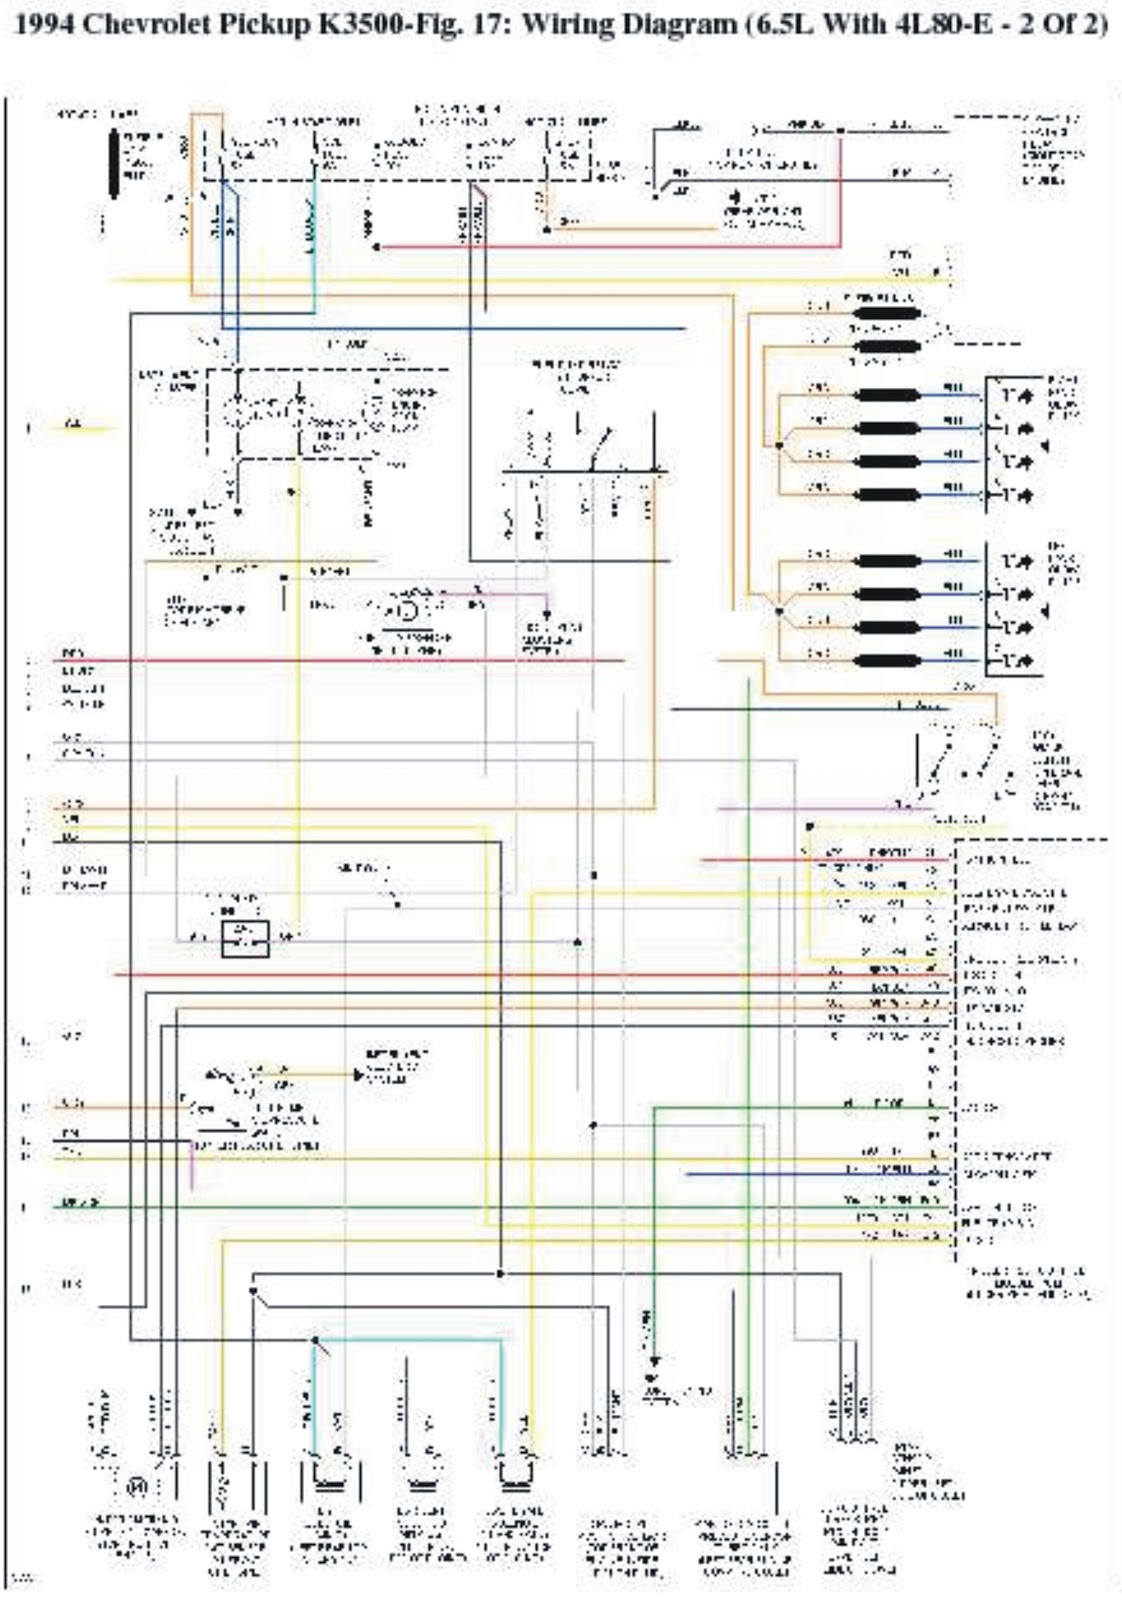 1990 Chevy Headlight Wiring Diagram 1994 Chevrolet Pick Up K3500 Wiring Diagrams Wiring